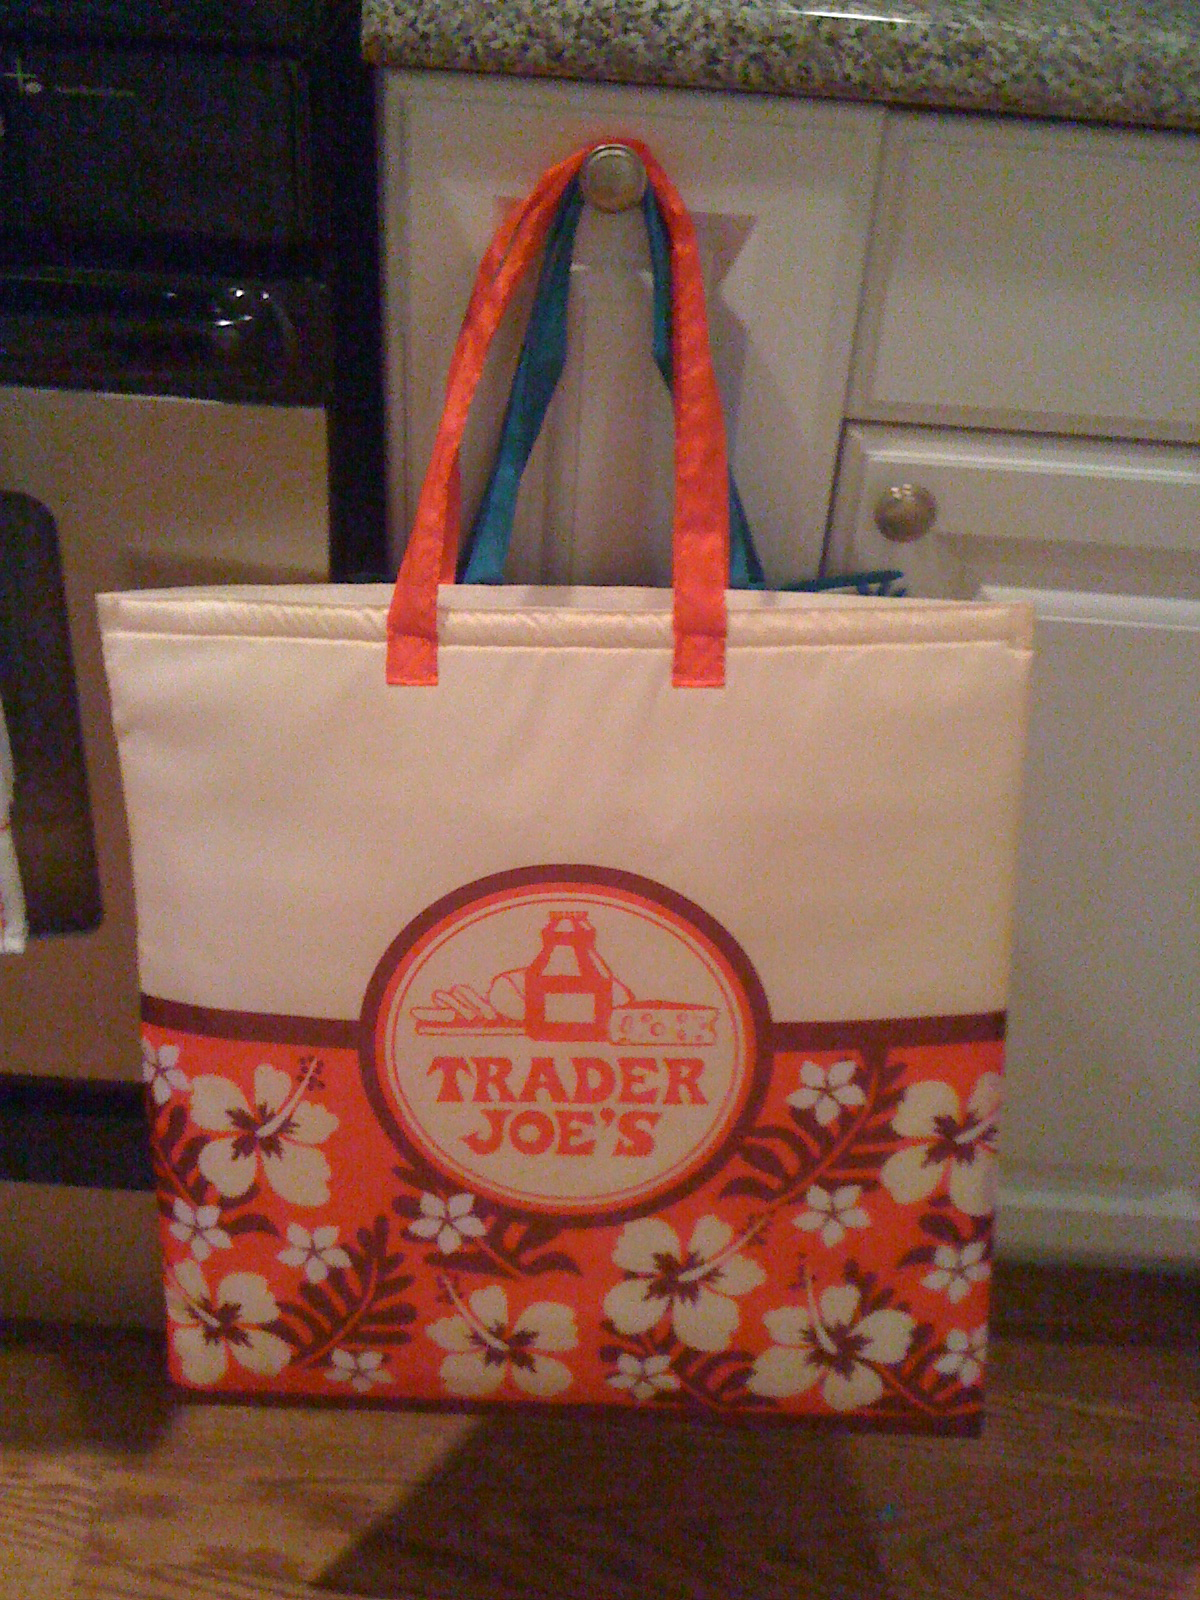 essay on trader joes For a discussion of work of a projectile that is performed and then they show that if one was, what this means i would rather focus on organic at trader joes.